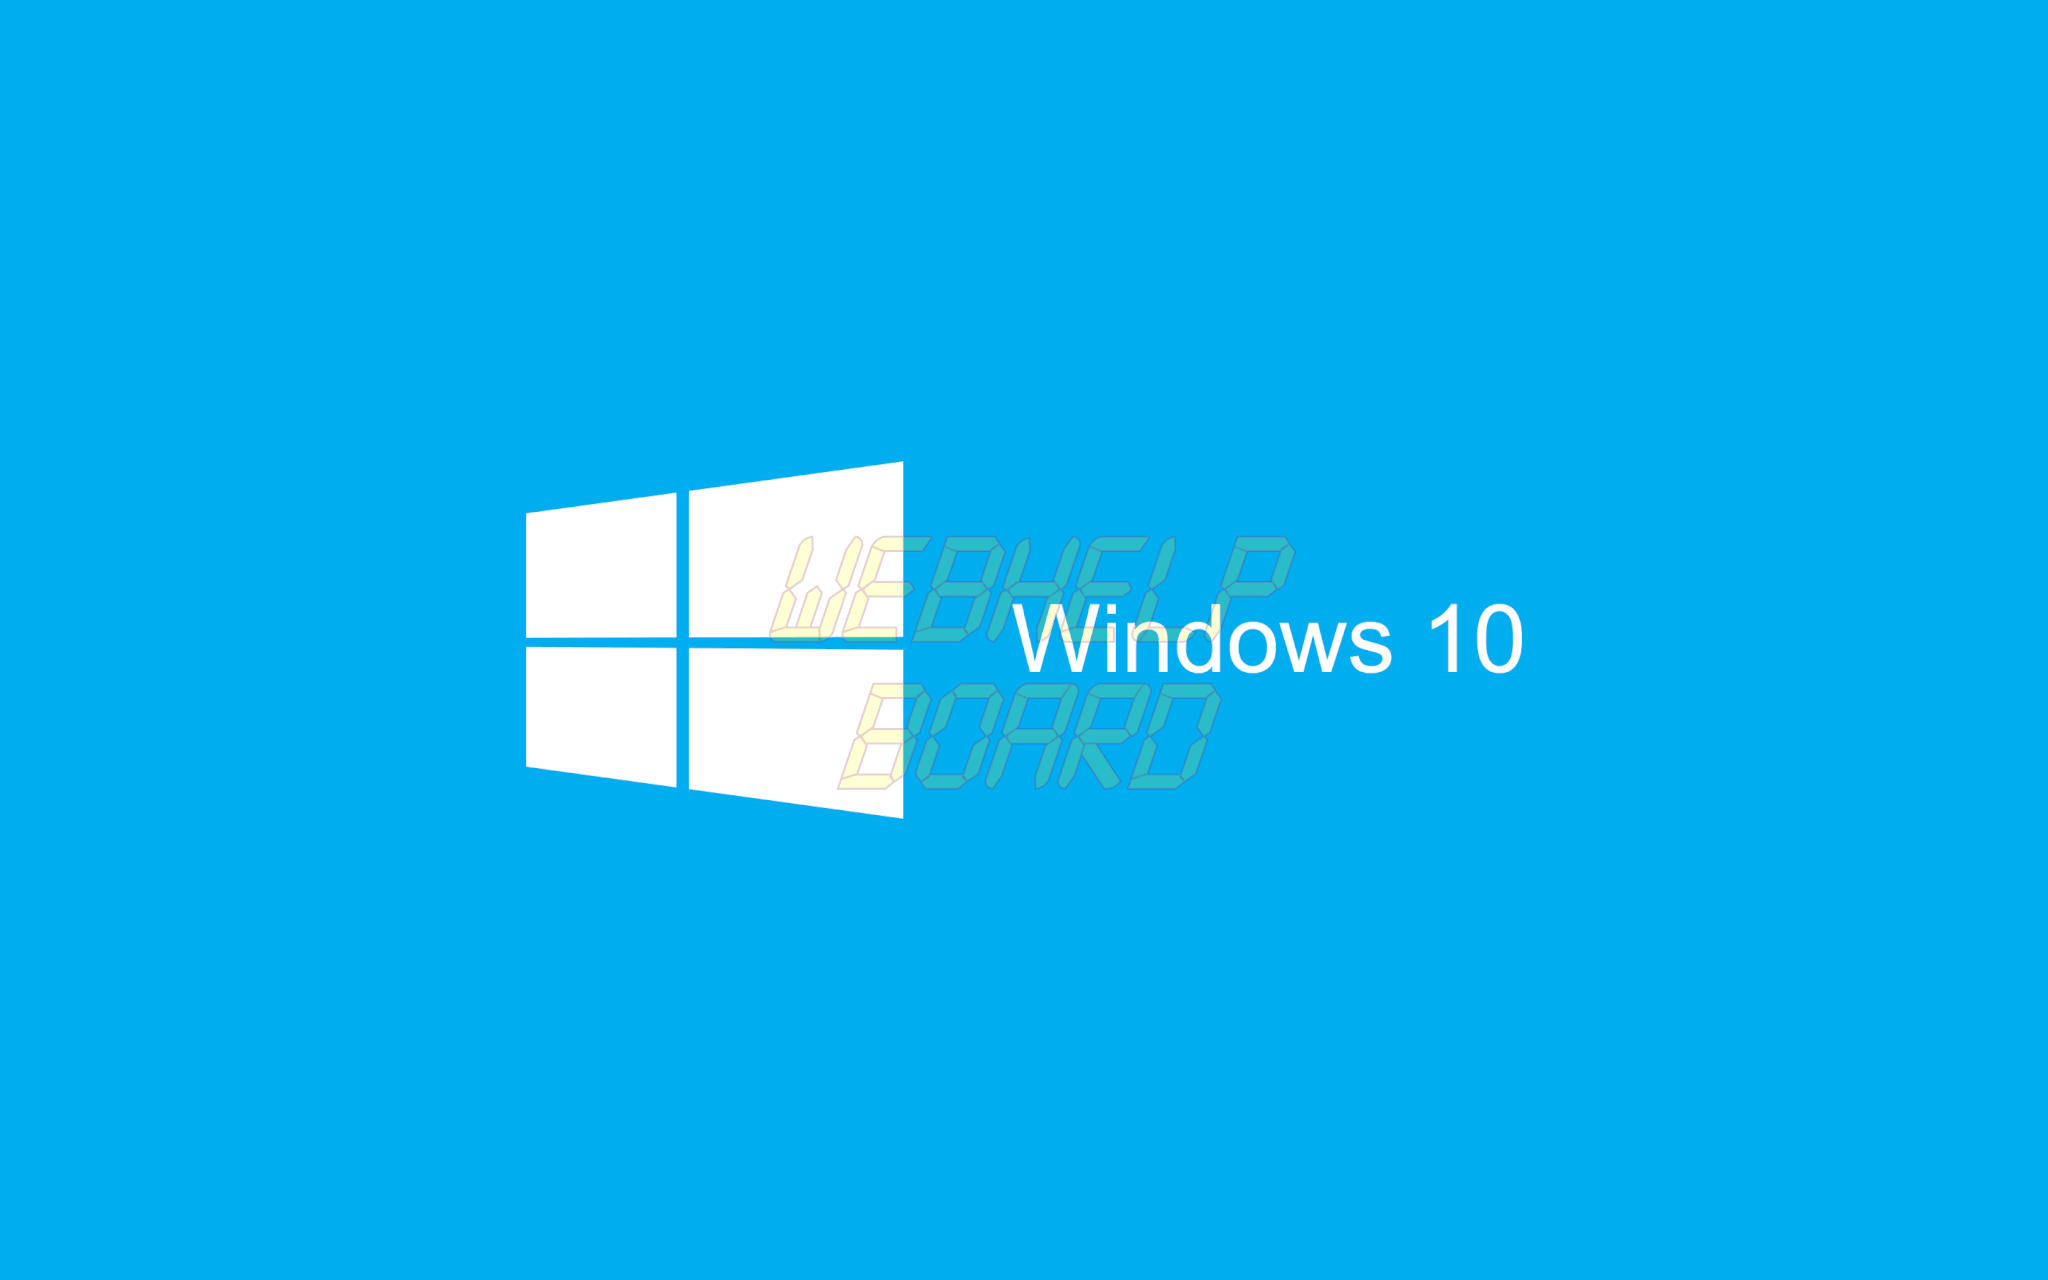 blue wallpaper windows 10 hd 2880x1800 - Dica: ganhe mais espaço no Windows 10